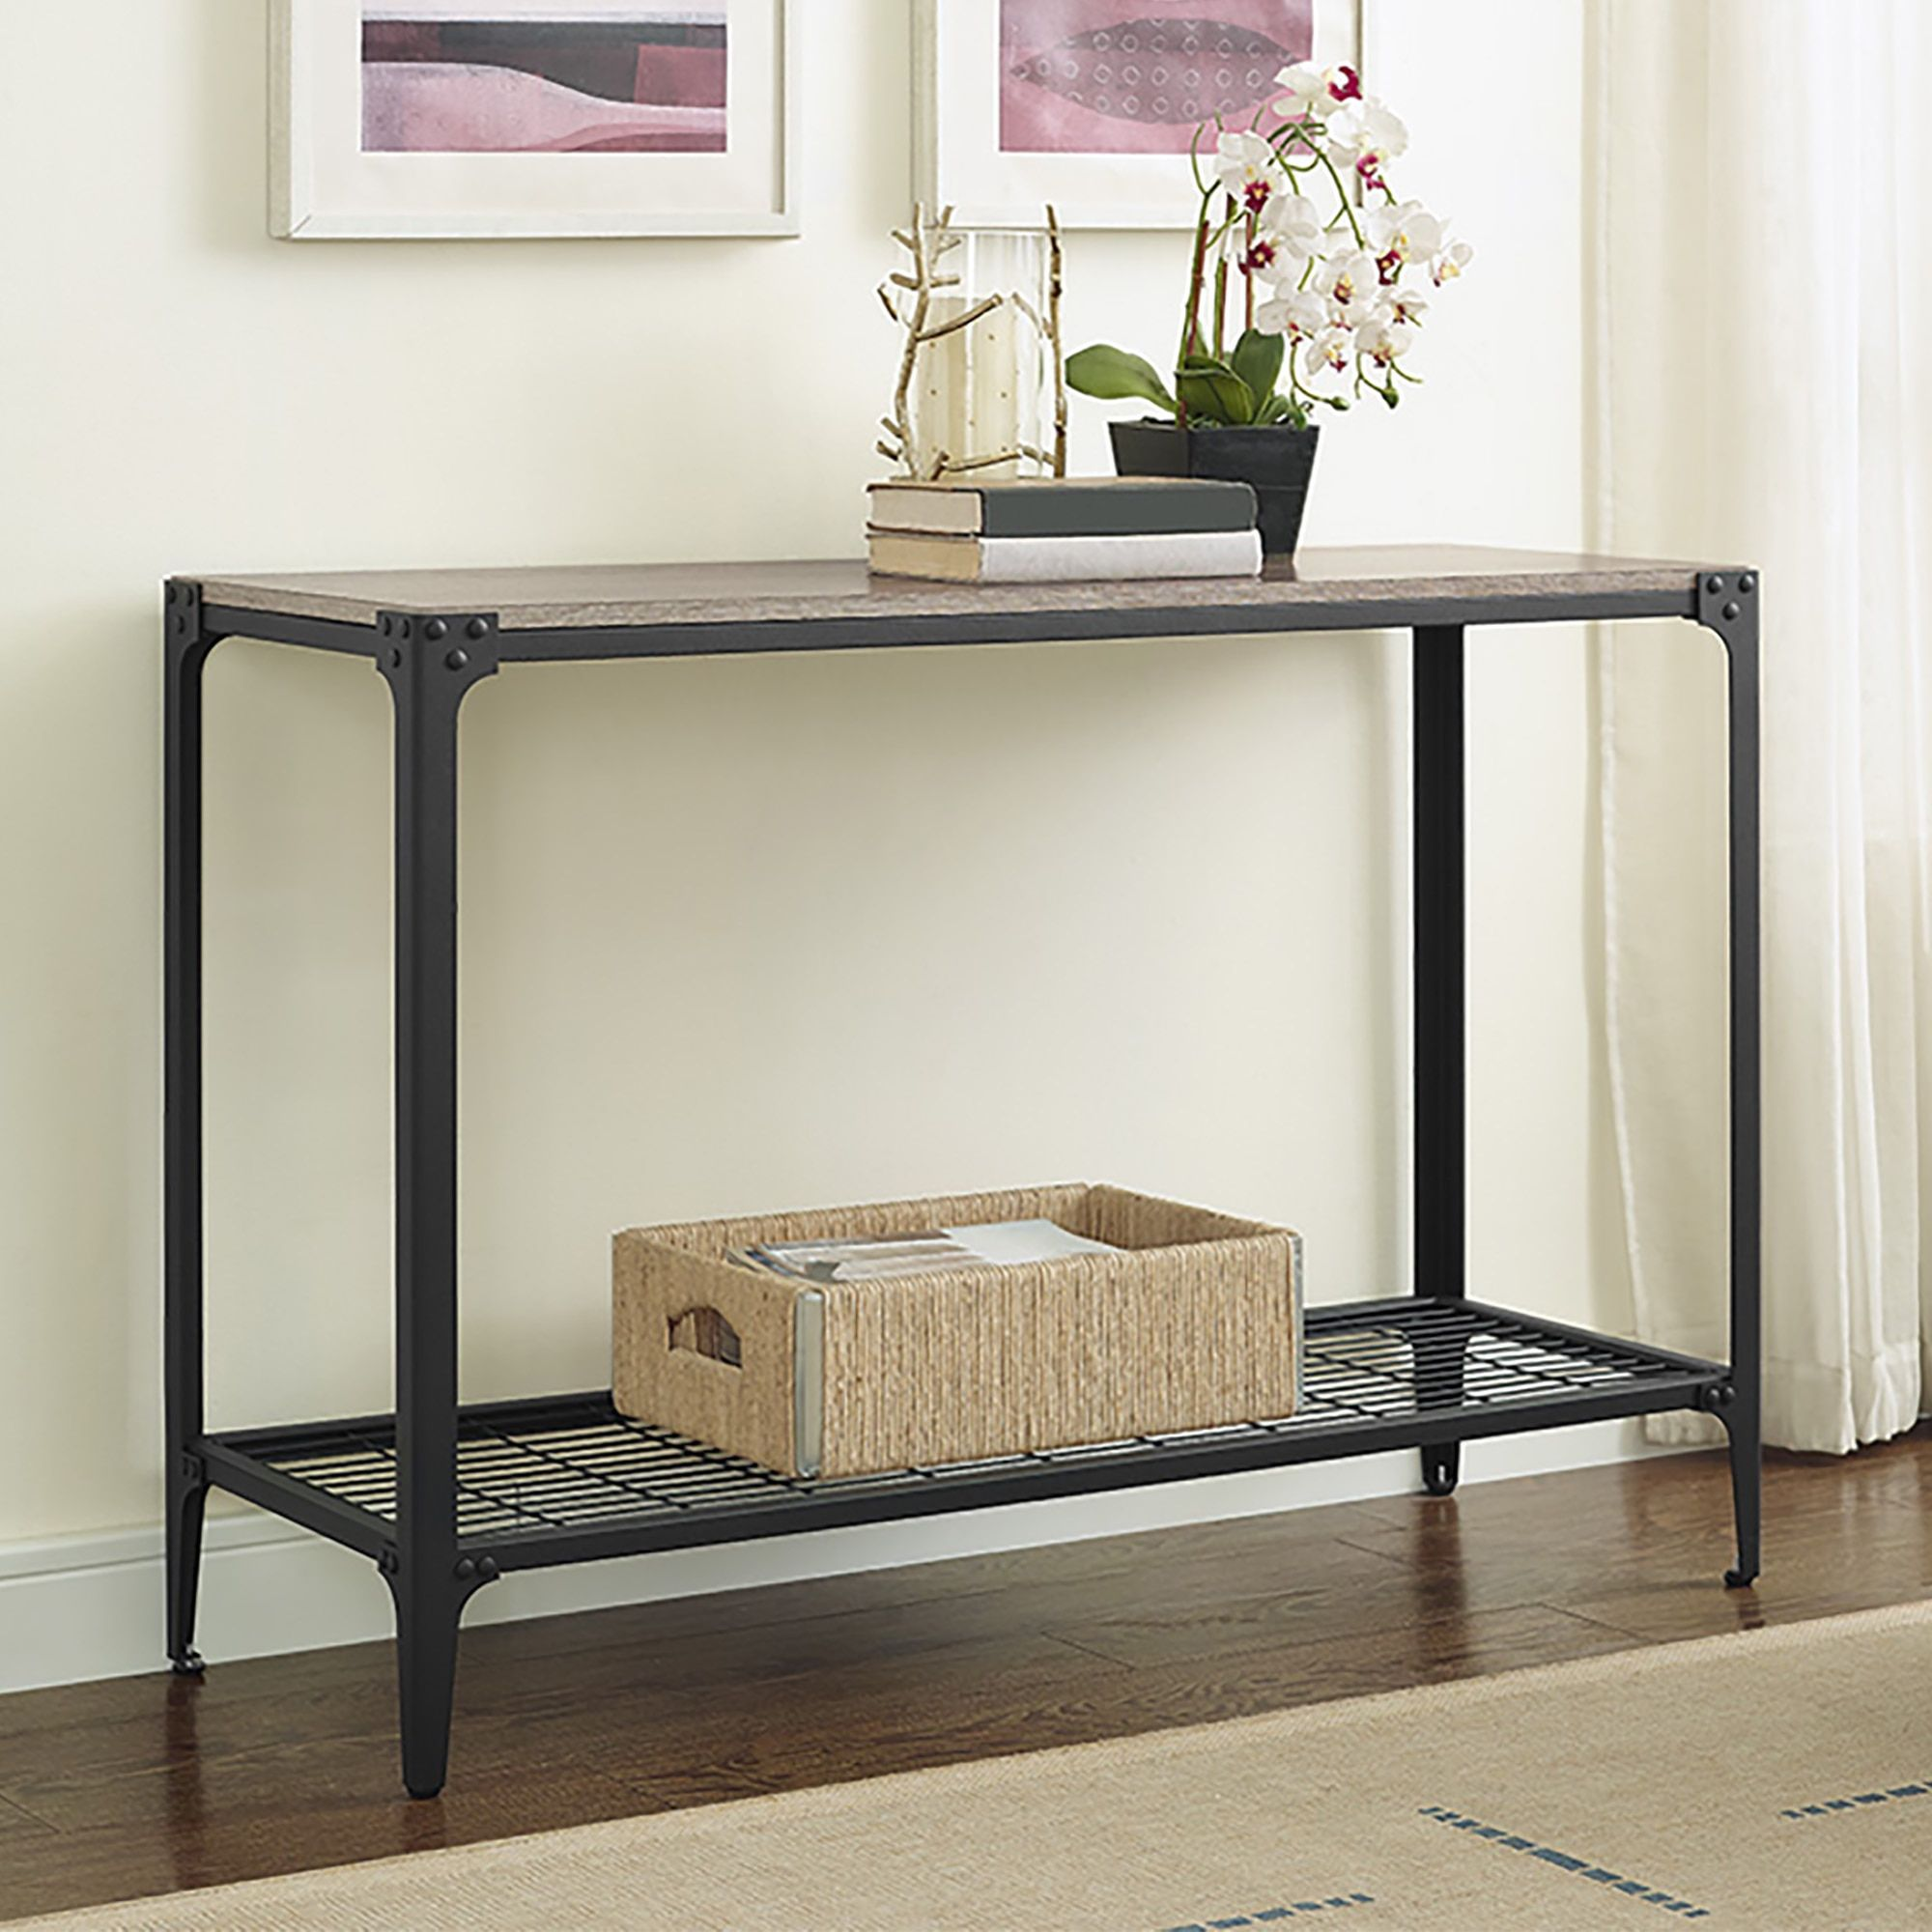 44 Inch Angle Iron Rustic Driftwood Wood Sofa Entry Table (Angle Iron  Rustic Wood